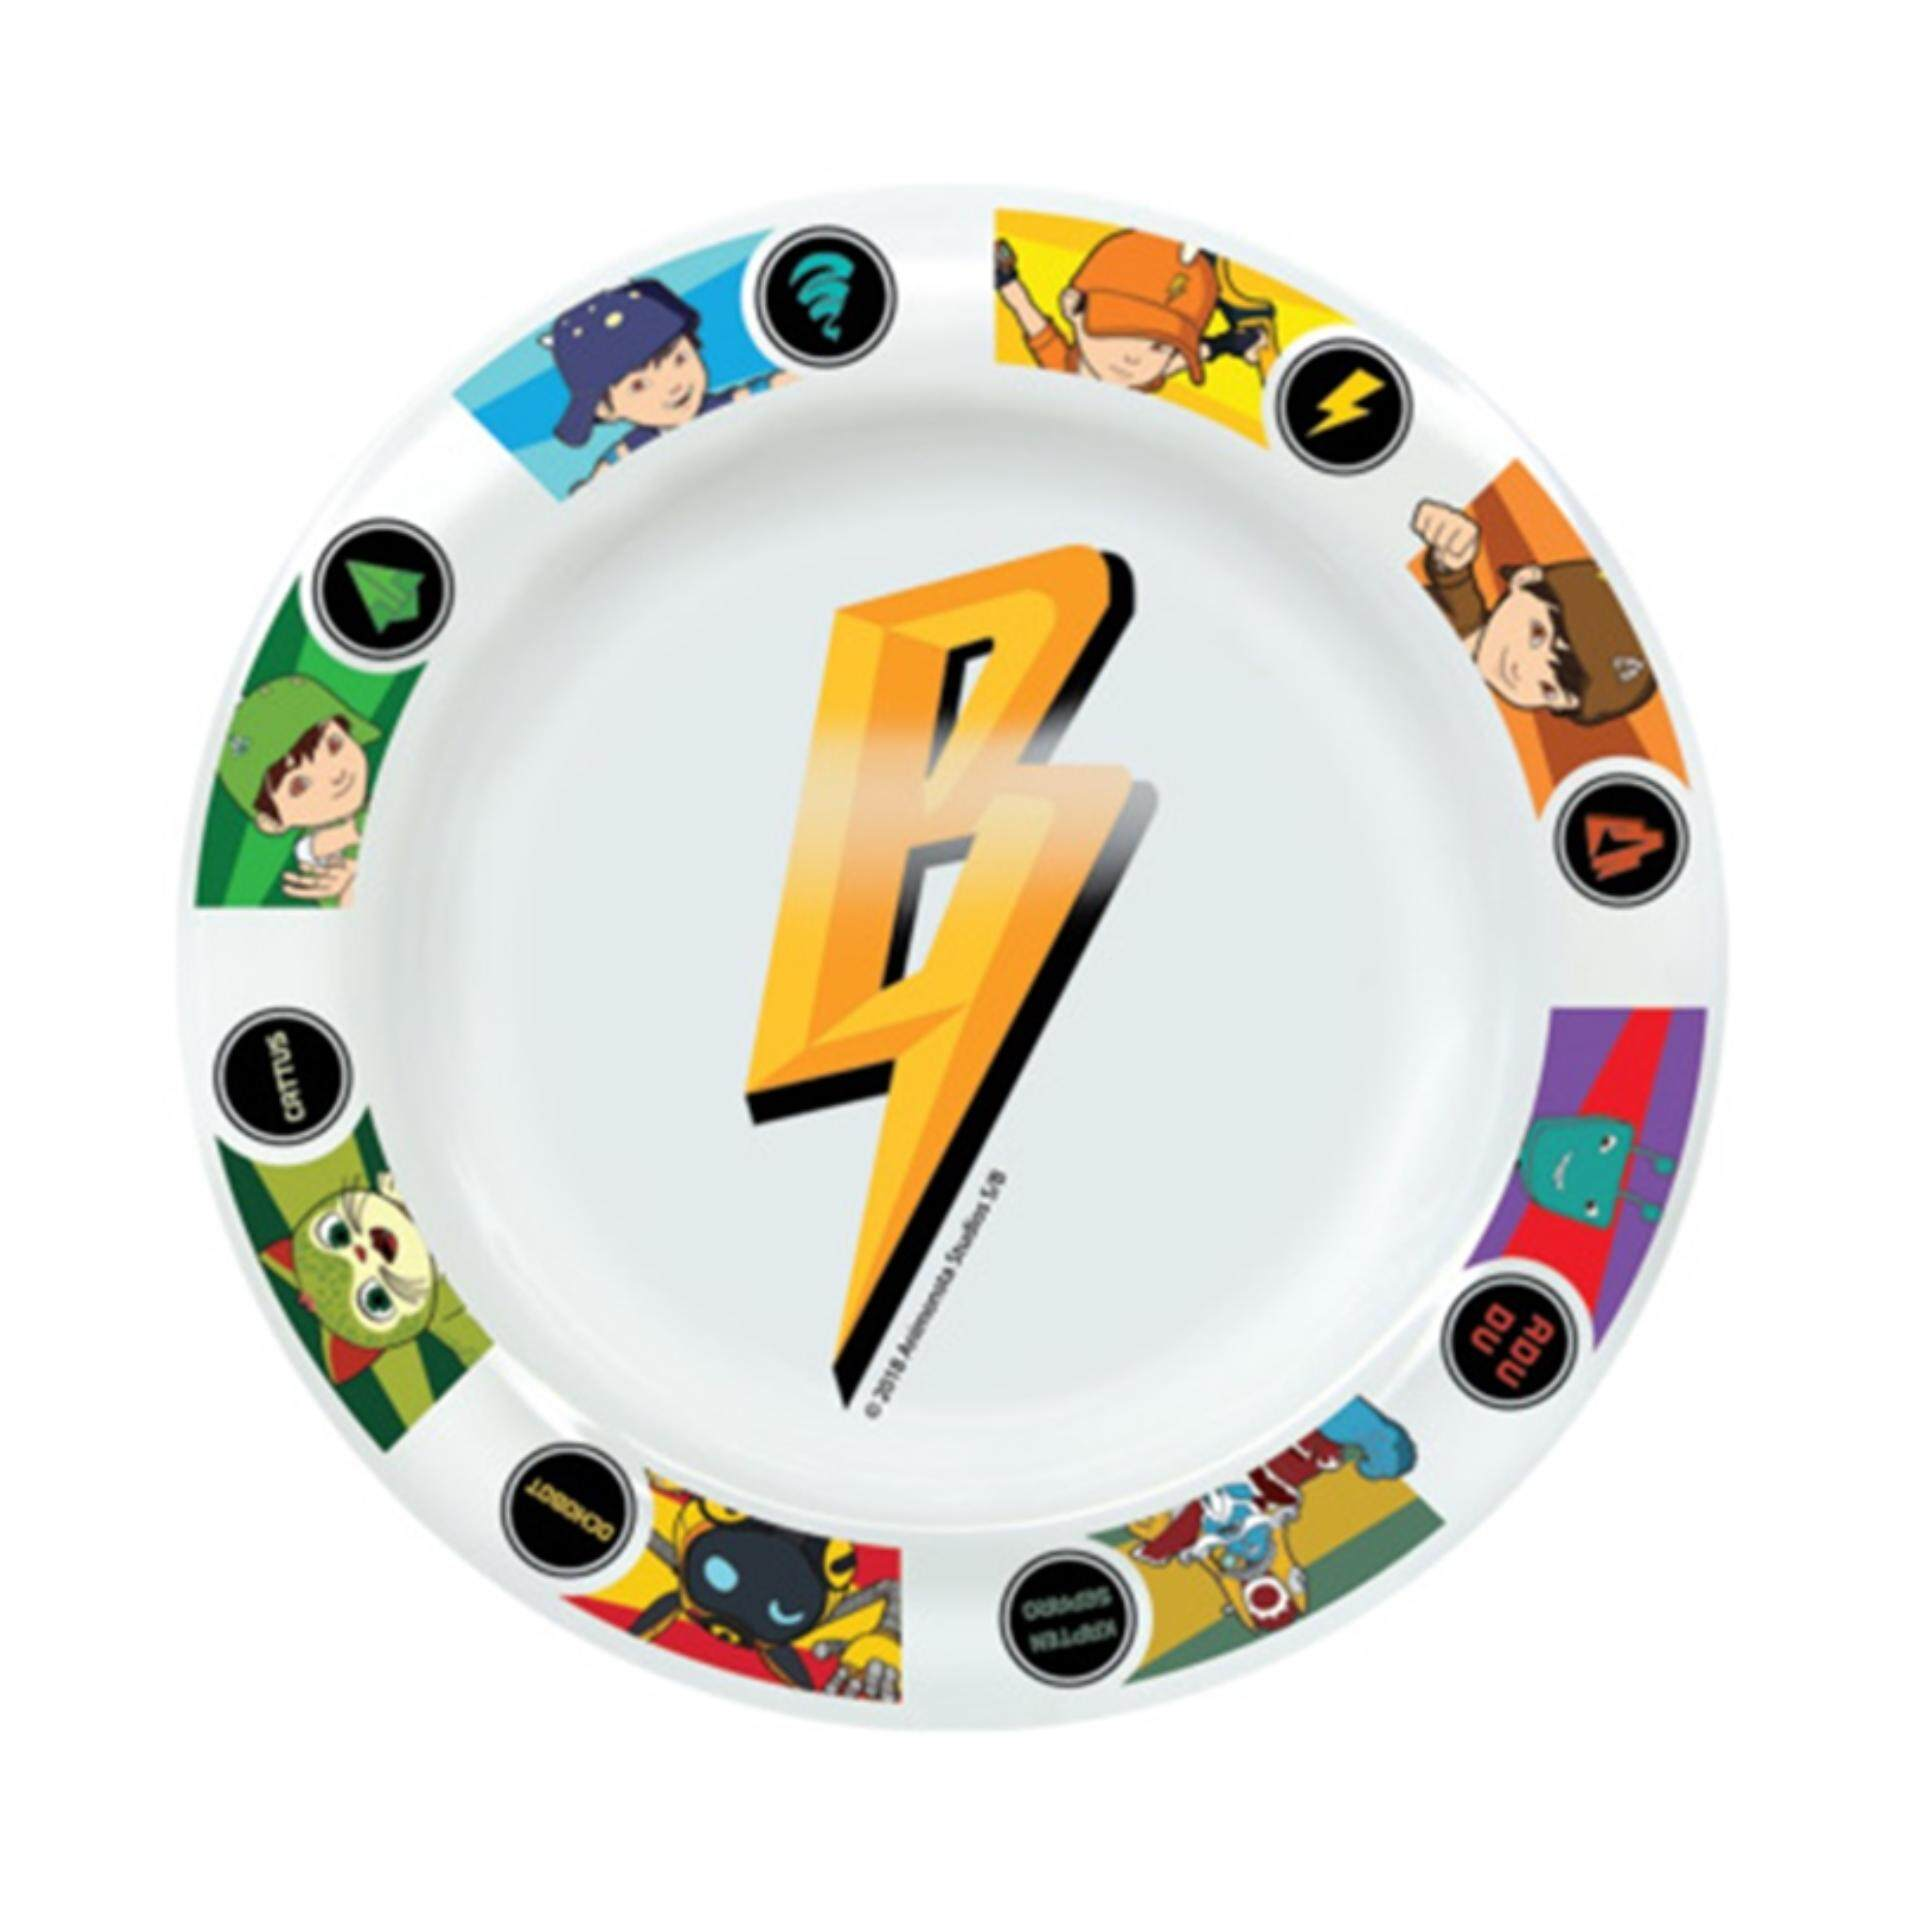 Boboiboy Galaxy Soup Plate 8 Inches White Colour